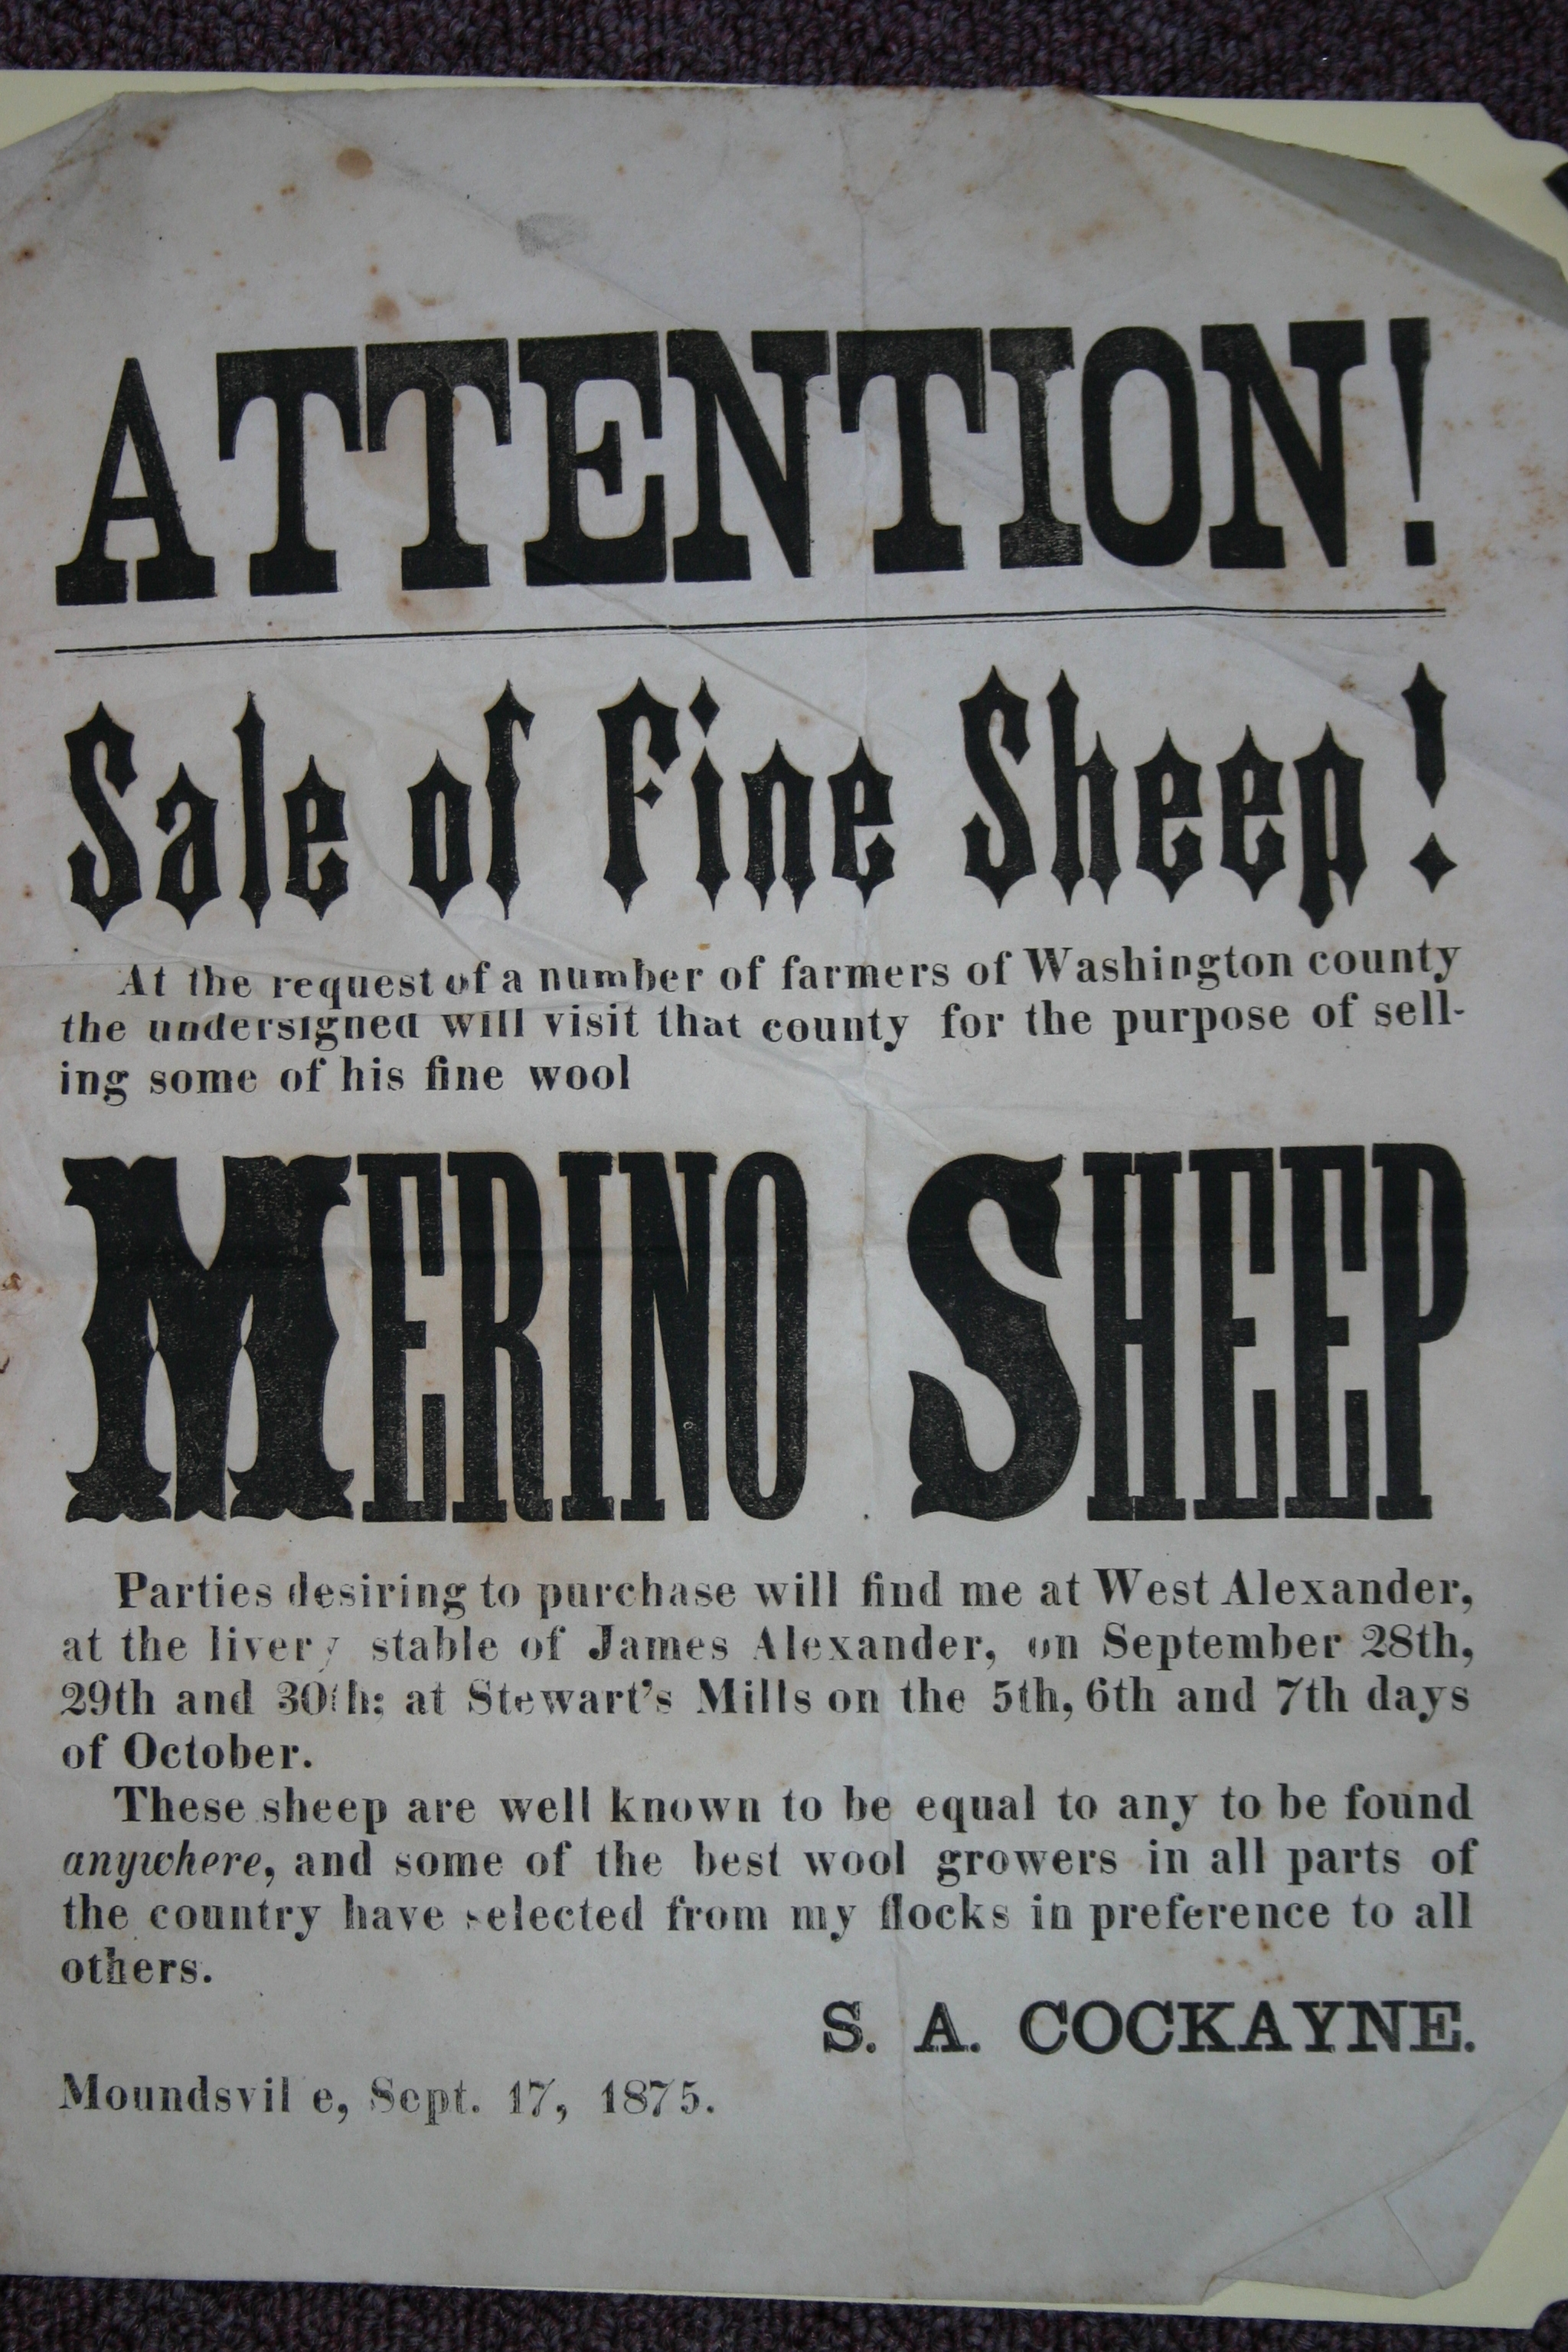 Merino Wool Poster - September 17, 1875.JPG